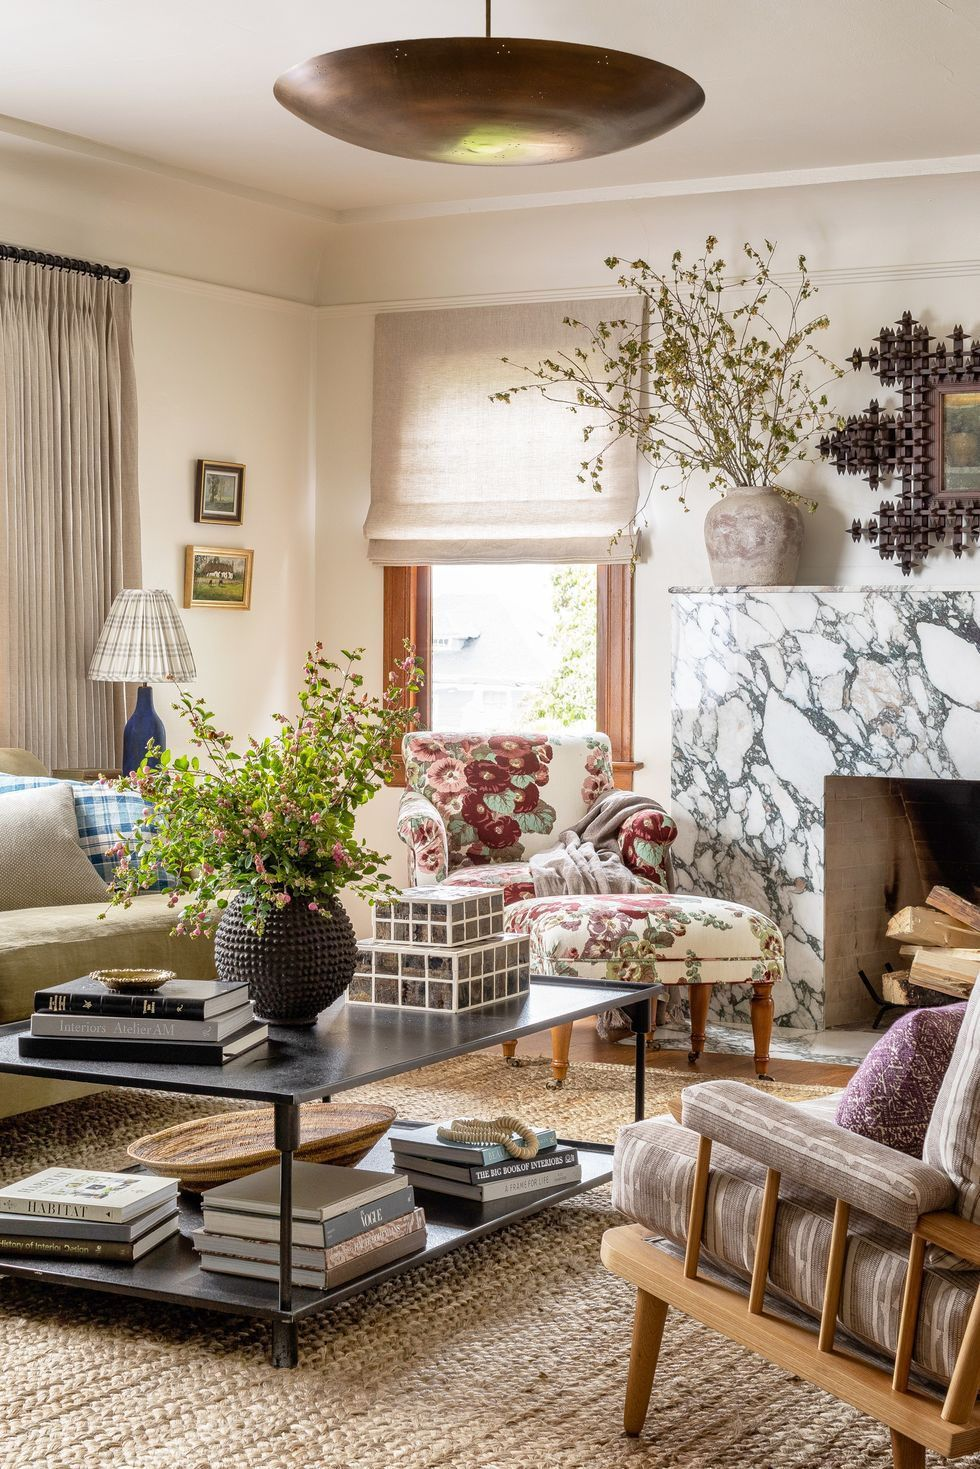 10 Off White Paint Colors That Fill A Room With Warmth In 2020 Living Room Colors Eclectic Living Room Stylish Living Room